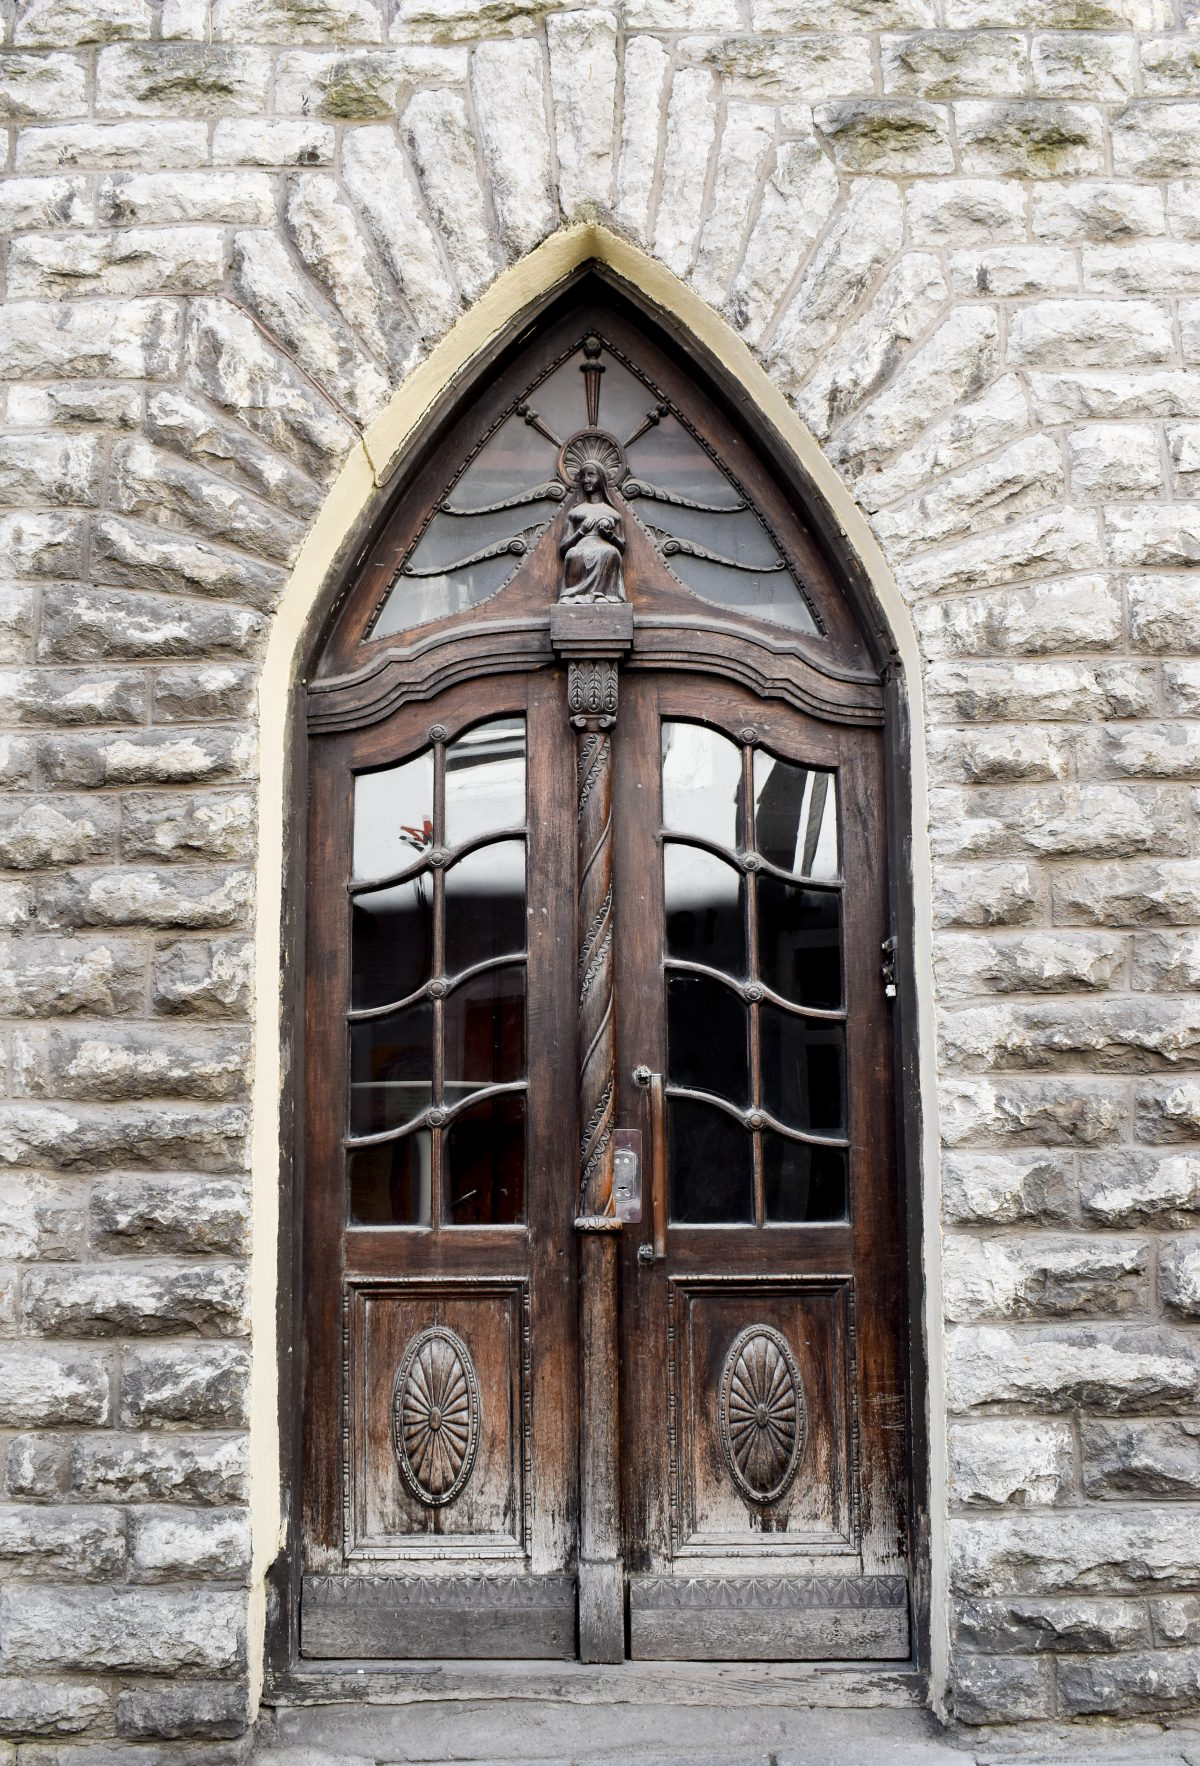 Old carved wooden door surrounded by stone in Tallinn Estonia